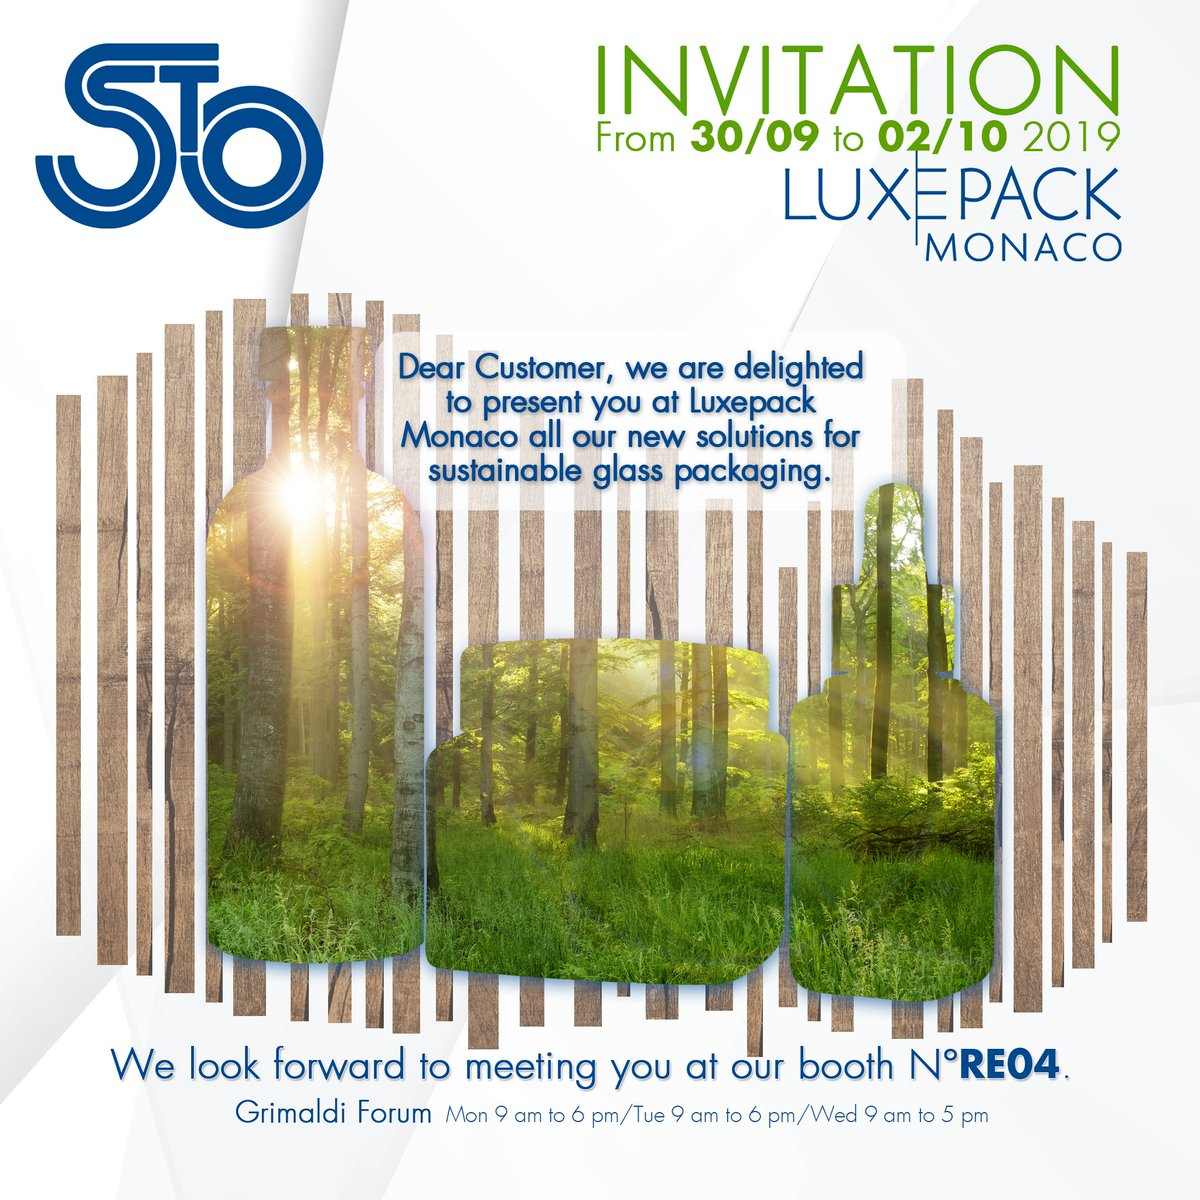 We are delighted to be presenting our new solutions for sustainable glass packaging at LUXE PACK Monaco, we hope to see you there! .  #theartofmakingglass #stoelzle #glass #luxe #luxepack2019 #luxepackmonaco2019 #luxepack #monaco #sustainability